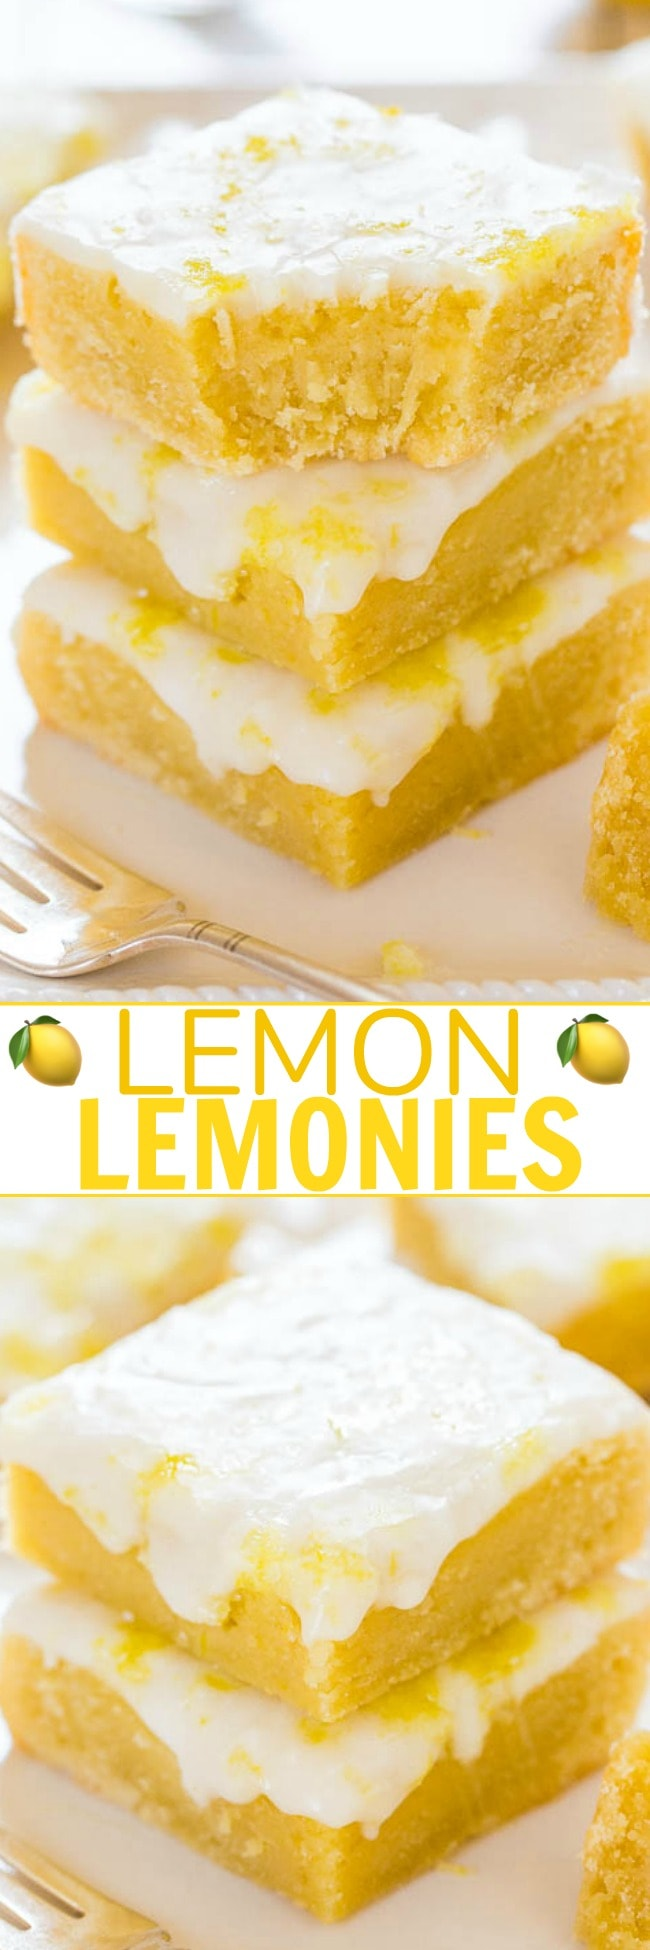 Lemon Lemonies — Like lemon brownies, but made with lemon and white chocolate!! Dense, chewy, not cakey and packed with big, bold lemon flavor! Always a crowd FAVORITE!!